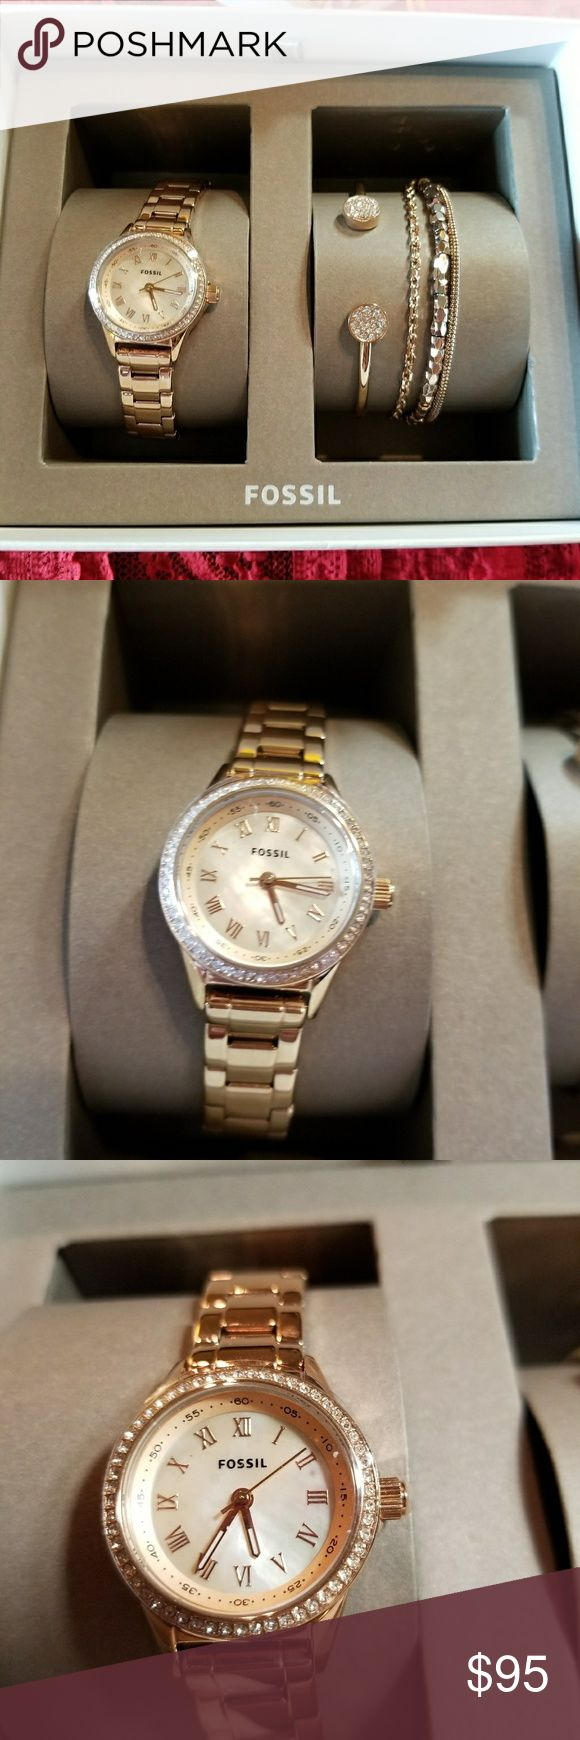 Fossil rosegold diamond studded ladies watch •Fossil rosegold diamond studded ladies watch with bracelets Fossil Accessories Watches